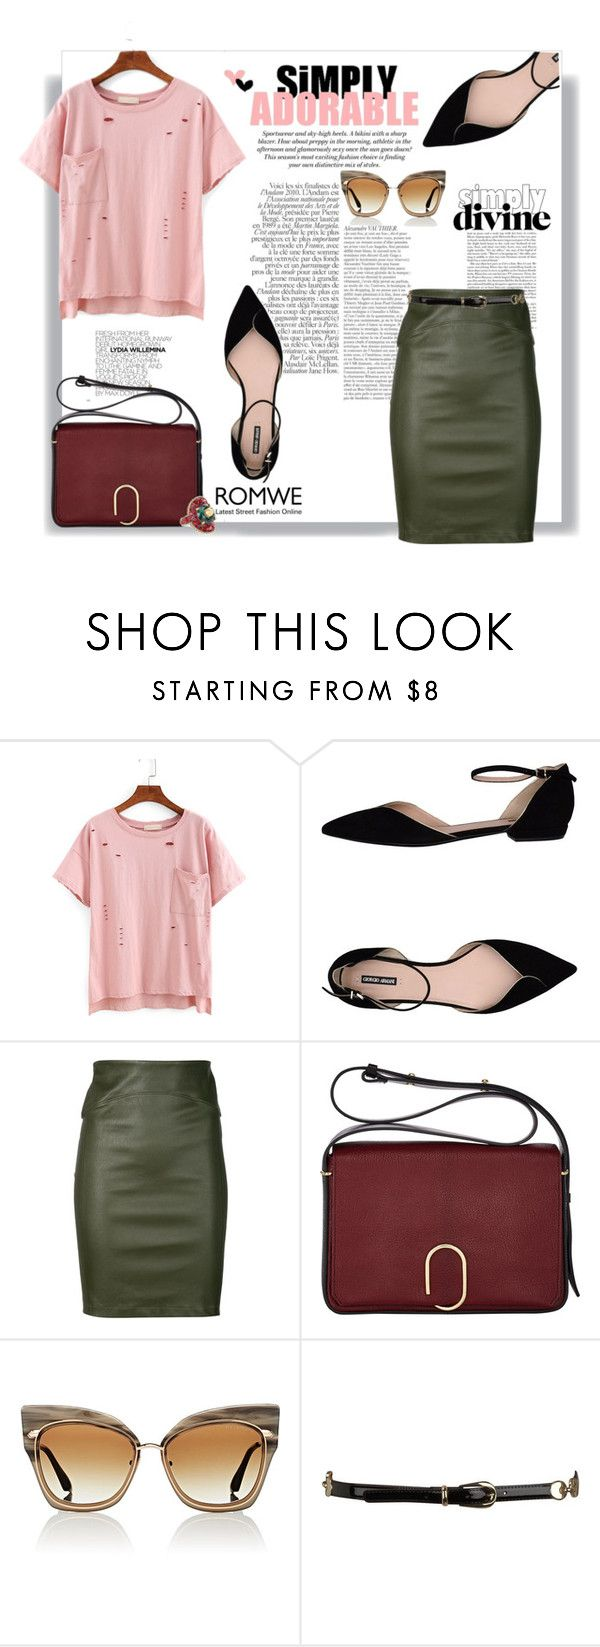 """Mundo de Ilusões"" by railda-pereira ❤ liked on Polyvore featuring H&M, Giorgio Armani, Chanel, Getting Back To Square One, 3.1 Phillip Lim, Dita, Dorothy Perkins, Gucci, romwe and statefair"